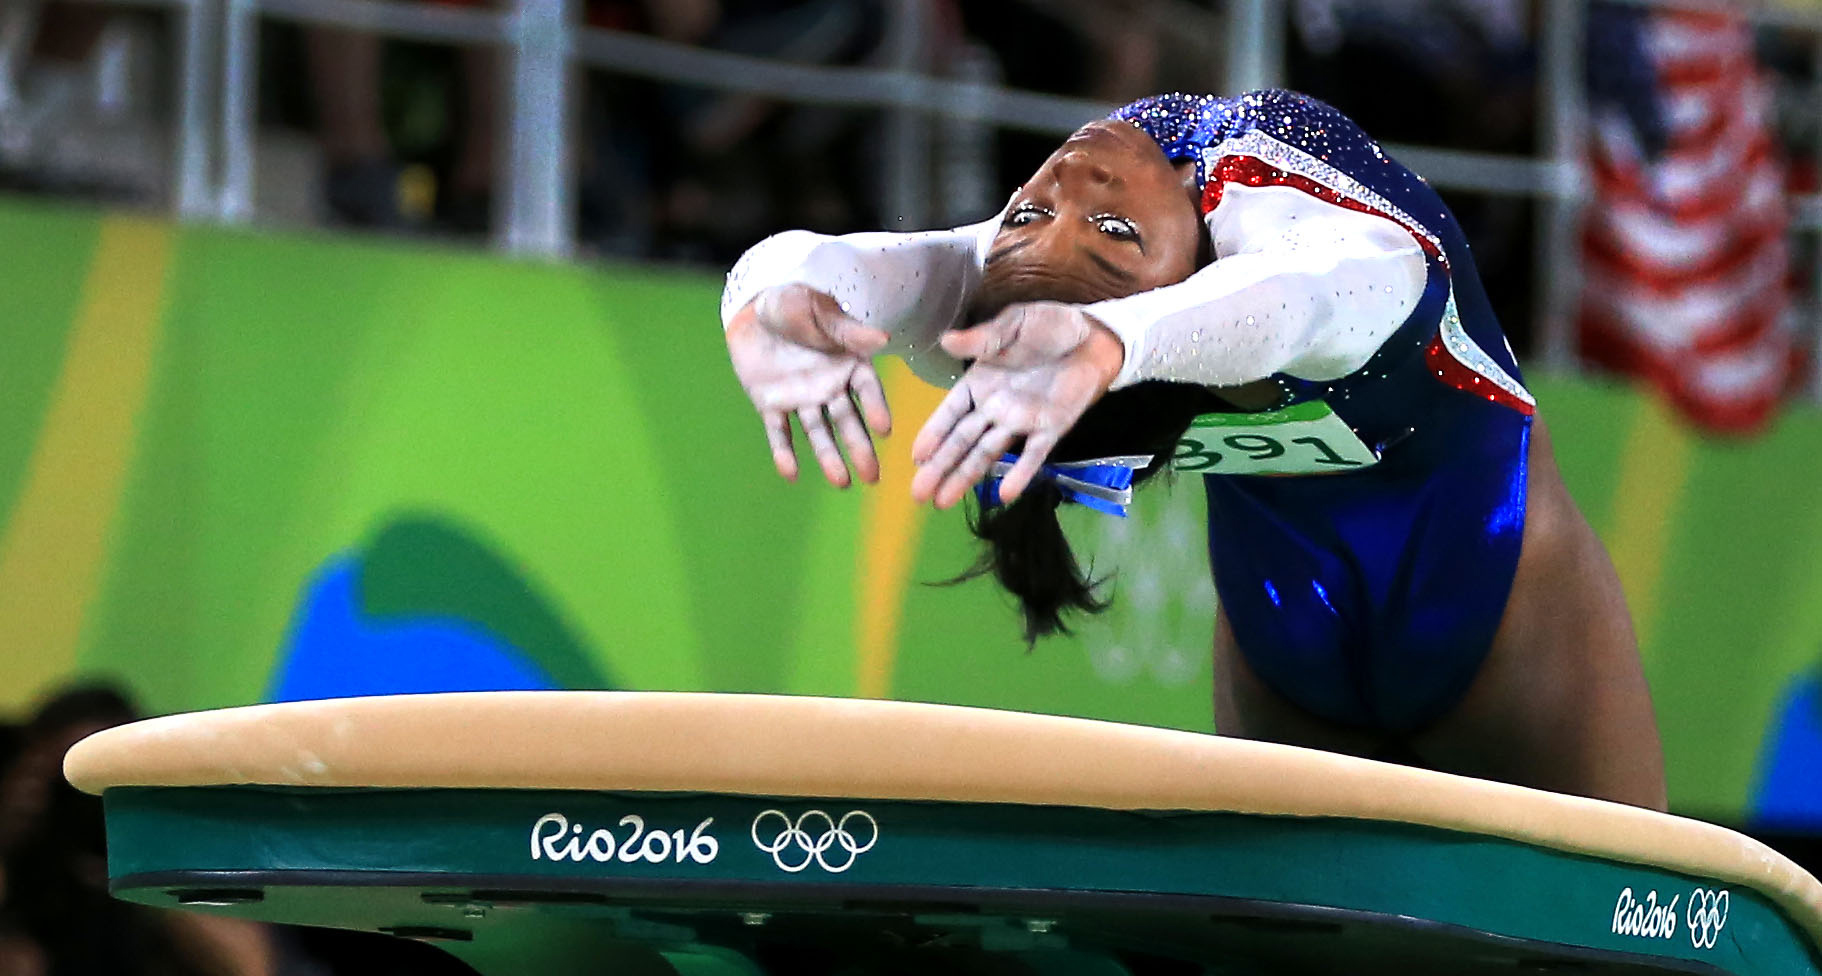 August 11, 2016 - Rio de Janeiro, RJ, Brazil - USA's Simone BILES launches herself on the vault during the Women's Individual All-Around Final Thursday at the 2016 Rio Summer Olympics.